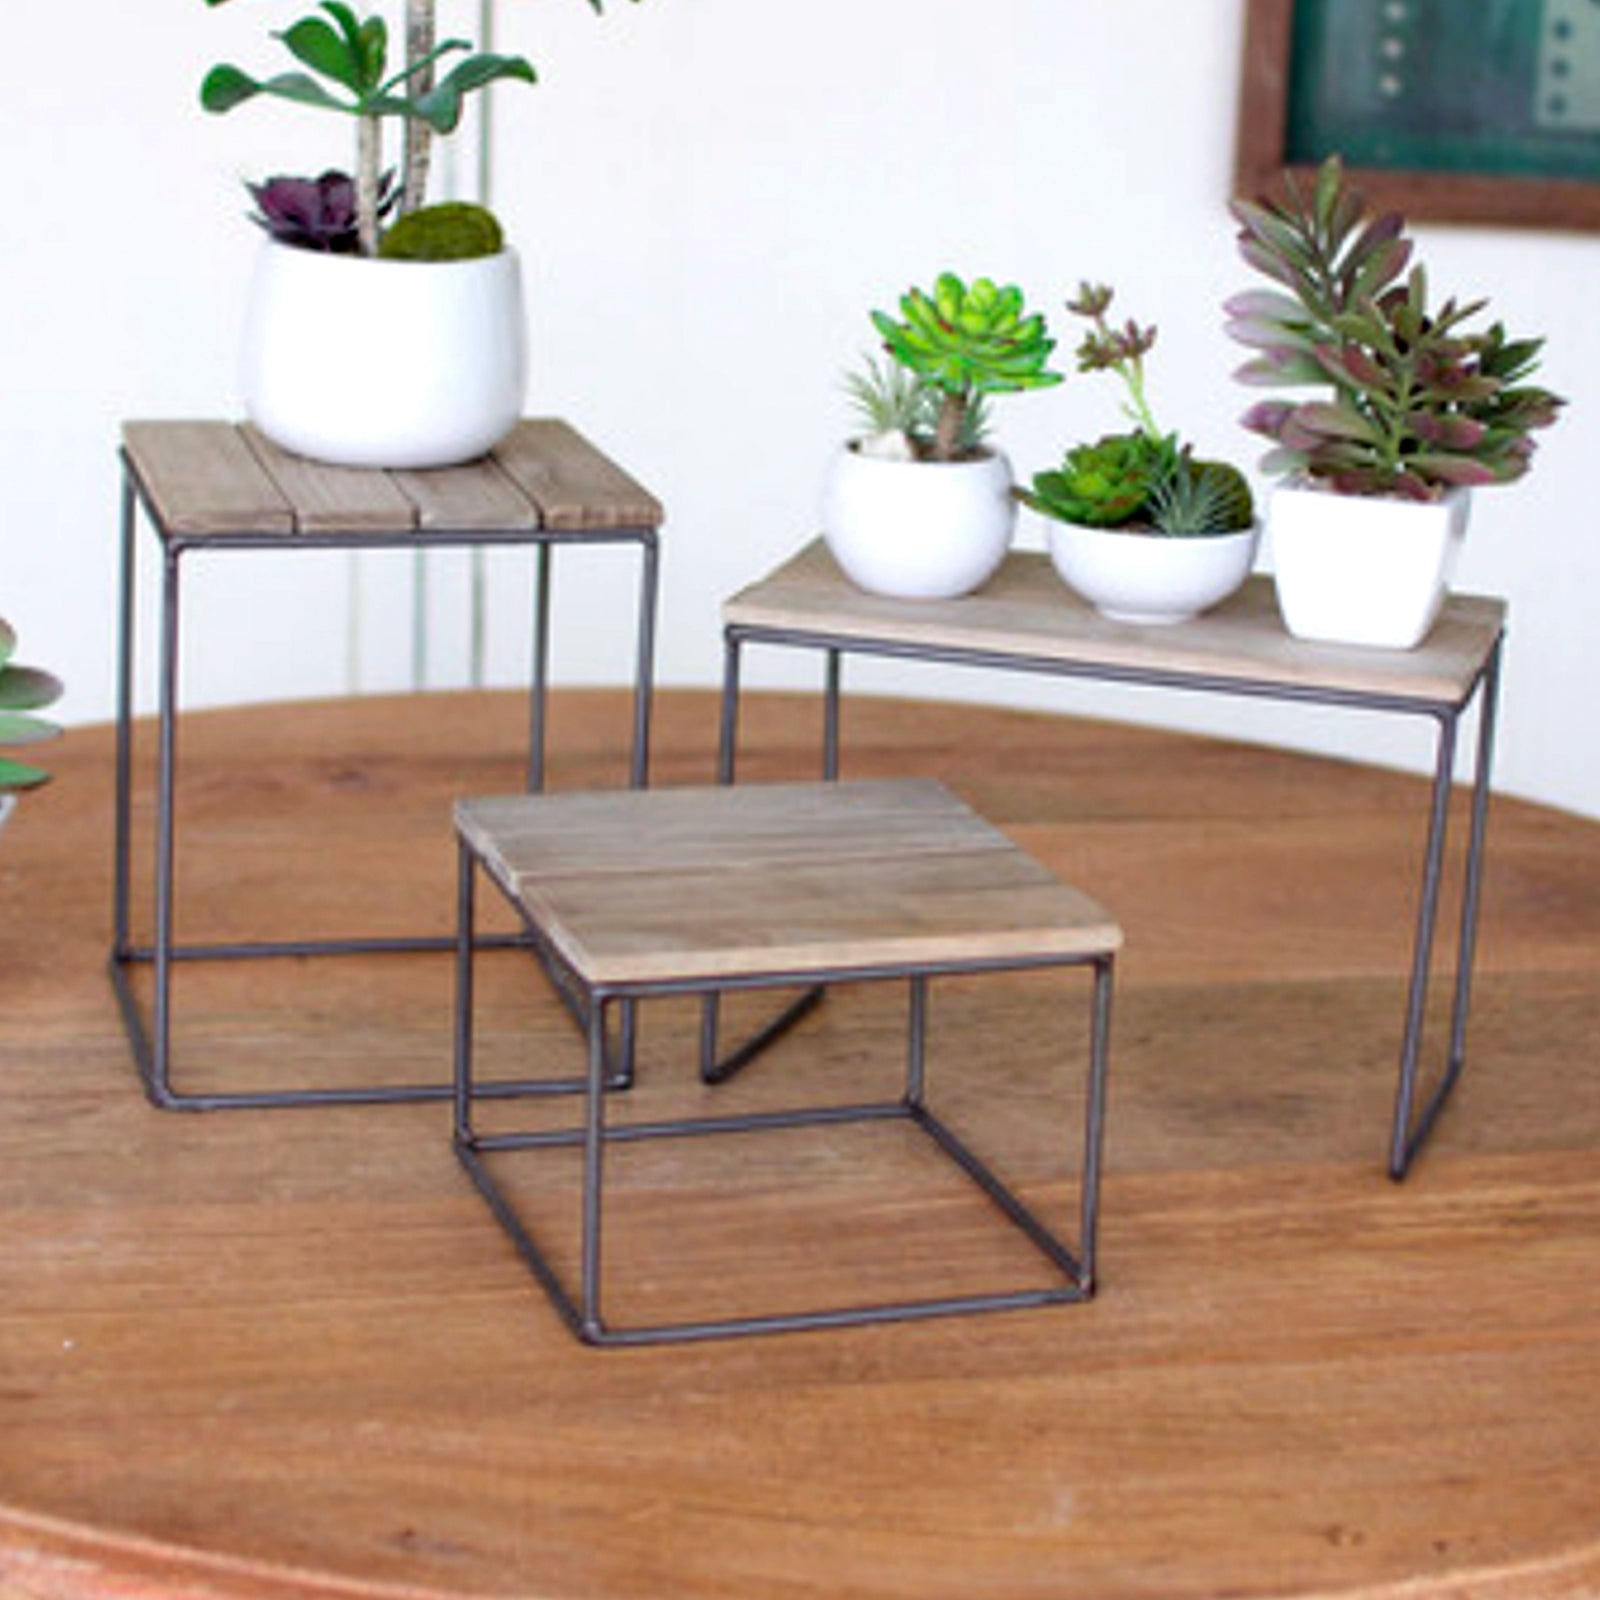 Wood and Metal Table Top Risers